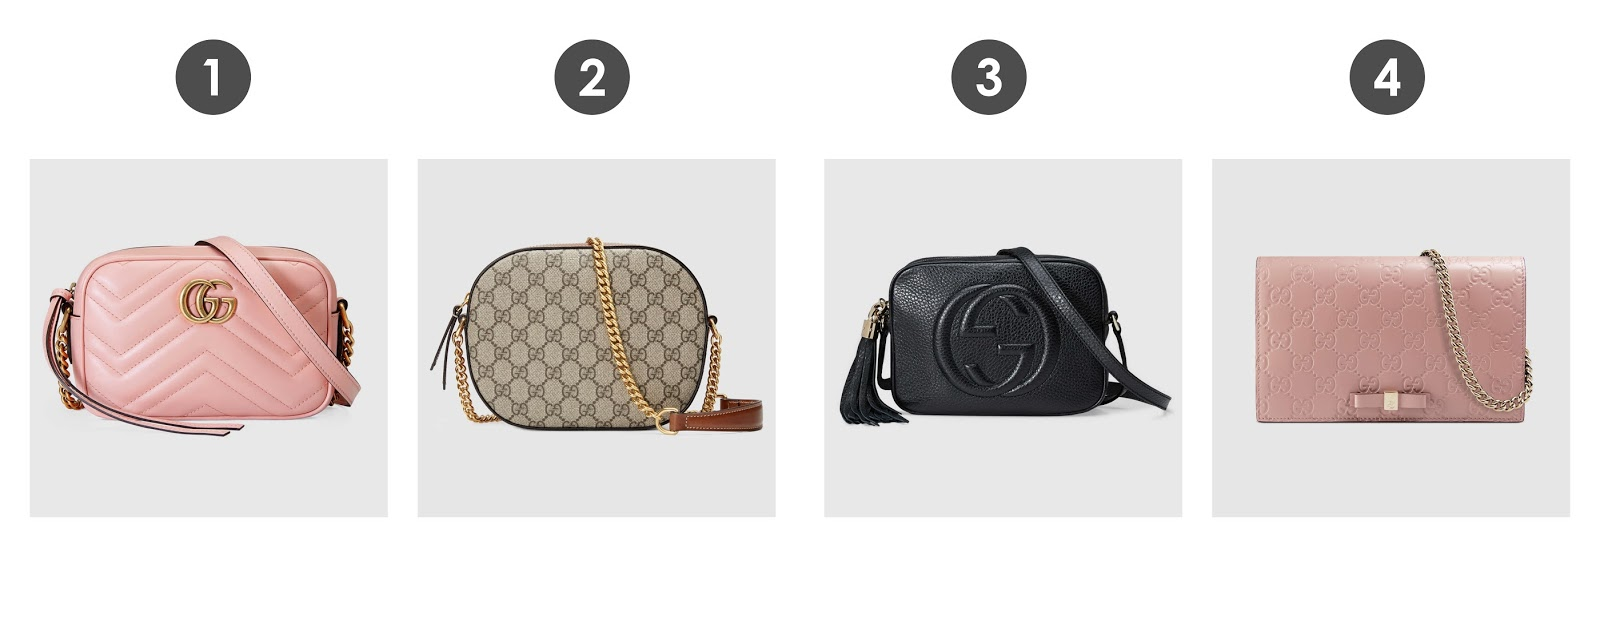 872d748114b4 I ve also fallen back in love with the classic Gucci GG monogram print. Plus  the Soho Disco bag has become a classic that any serious or casual bag lover  ...